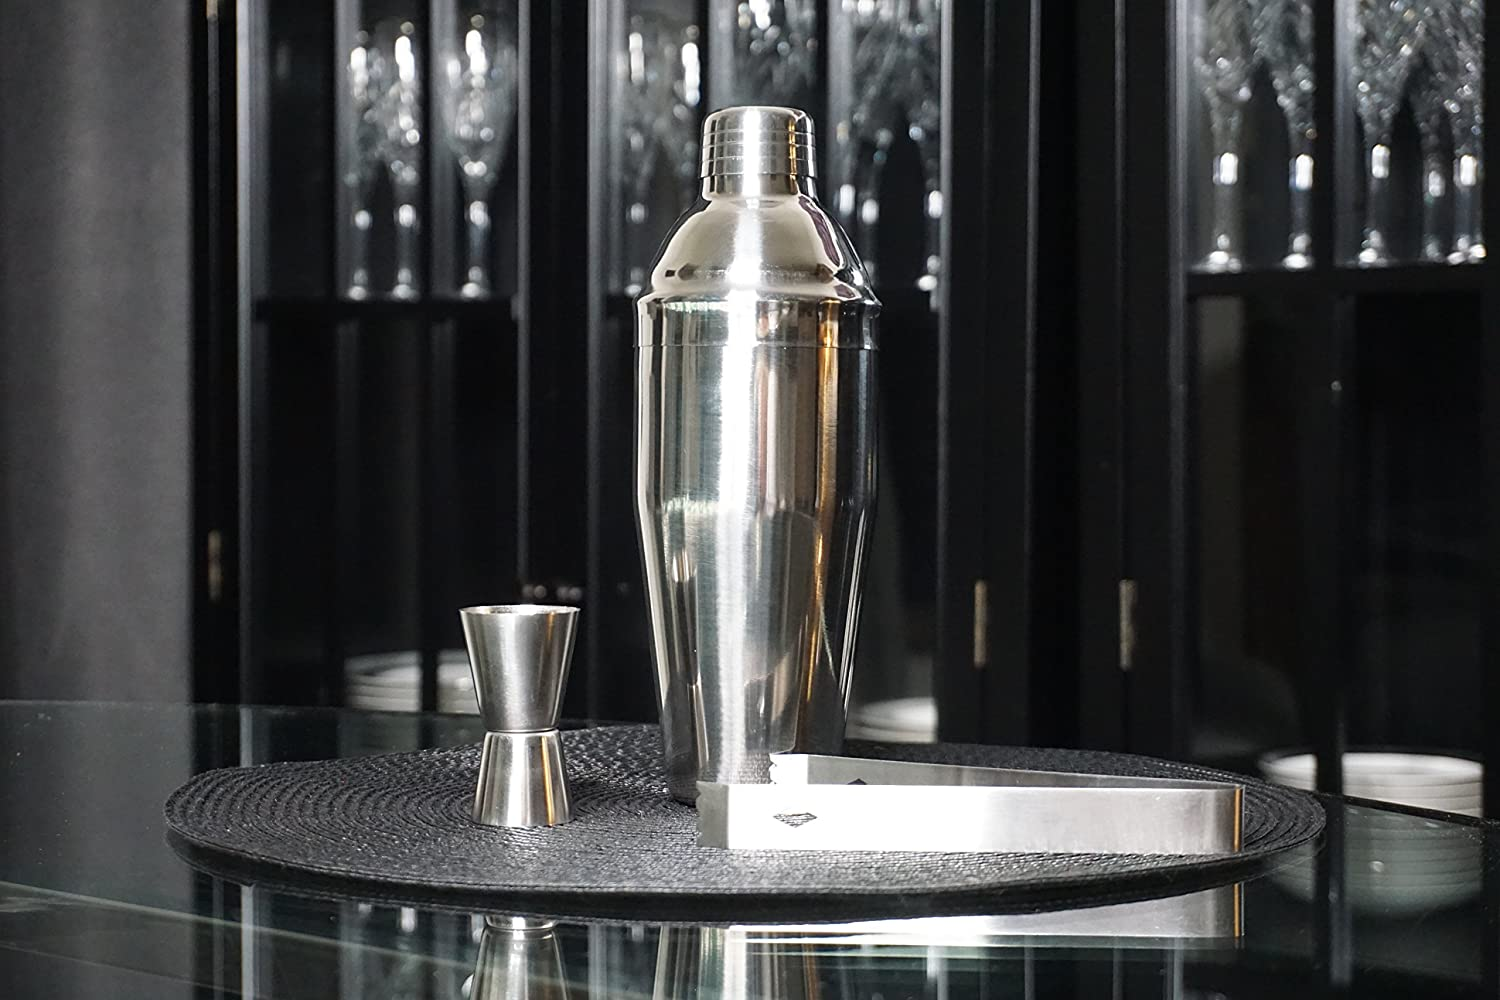 b34223eabfd8 Amazon.com  Luxury 3-Piece Home Bar Set - Large 24 oz (750 mL) Professional  Cobbler Cocktail Shaker with Built-in Strainer